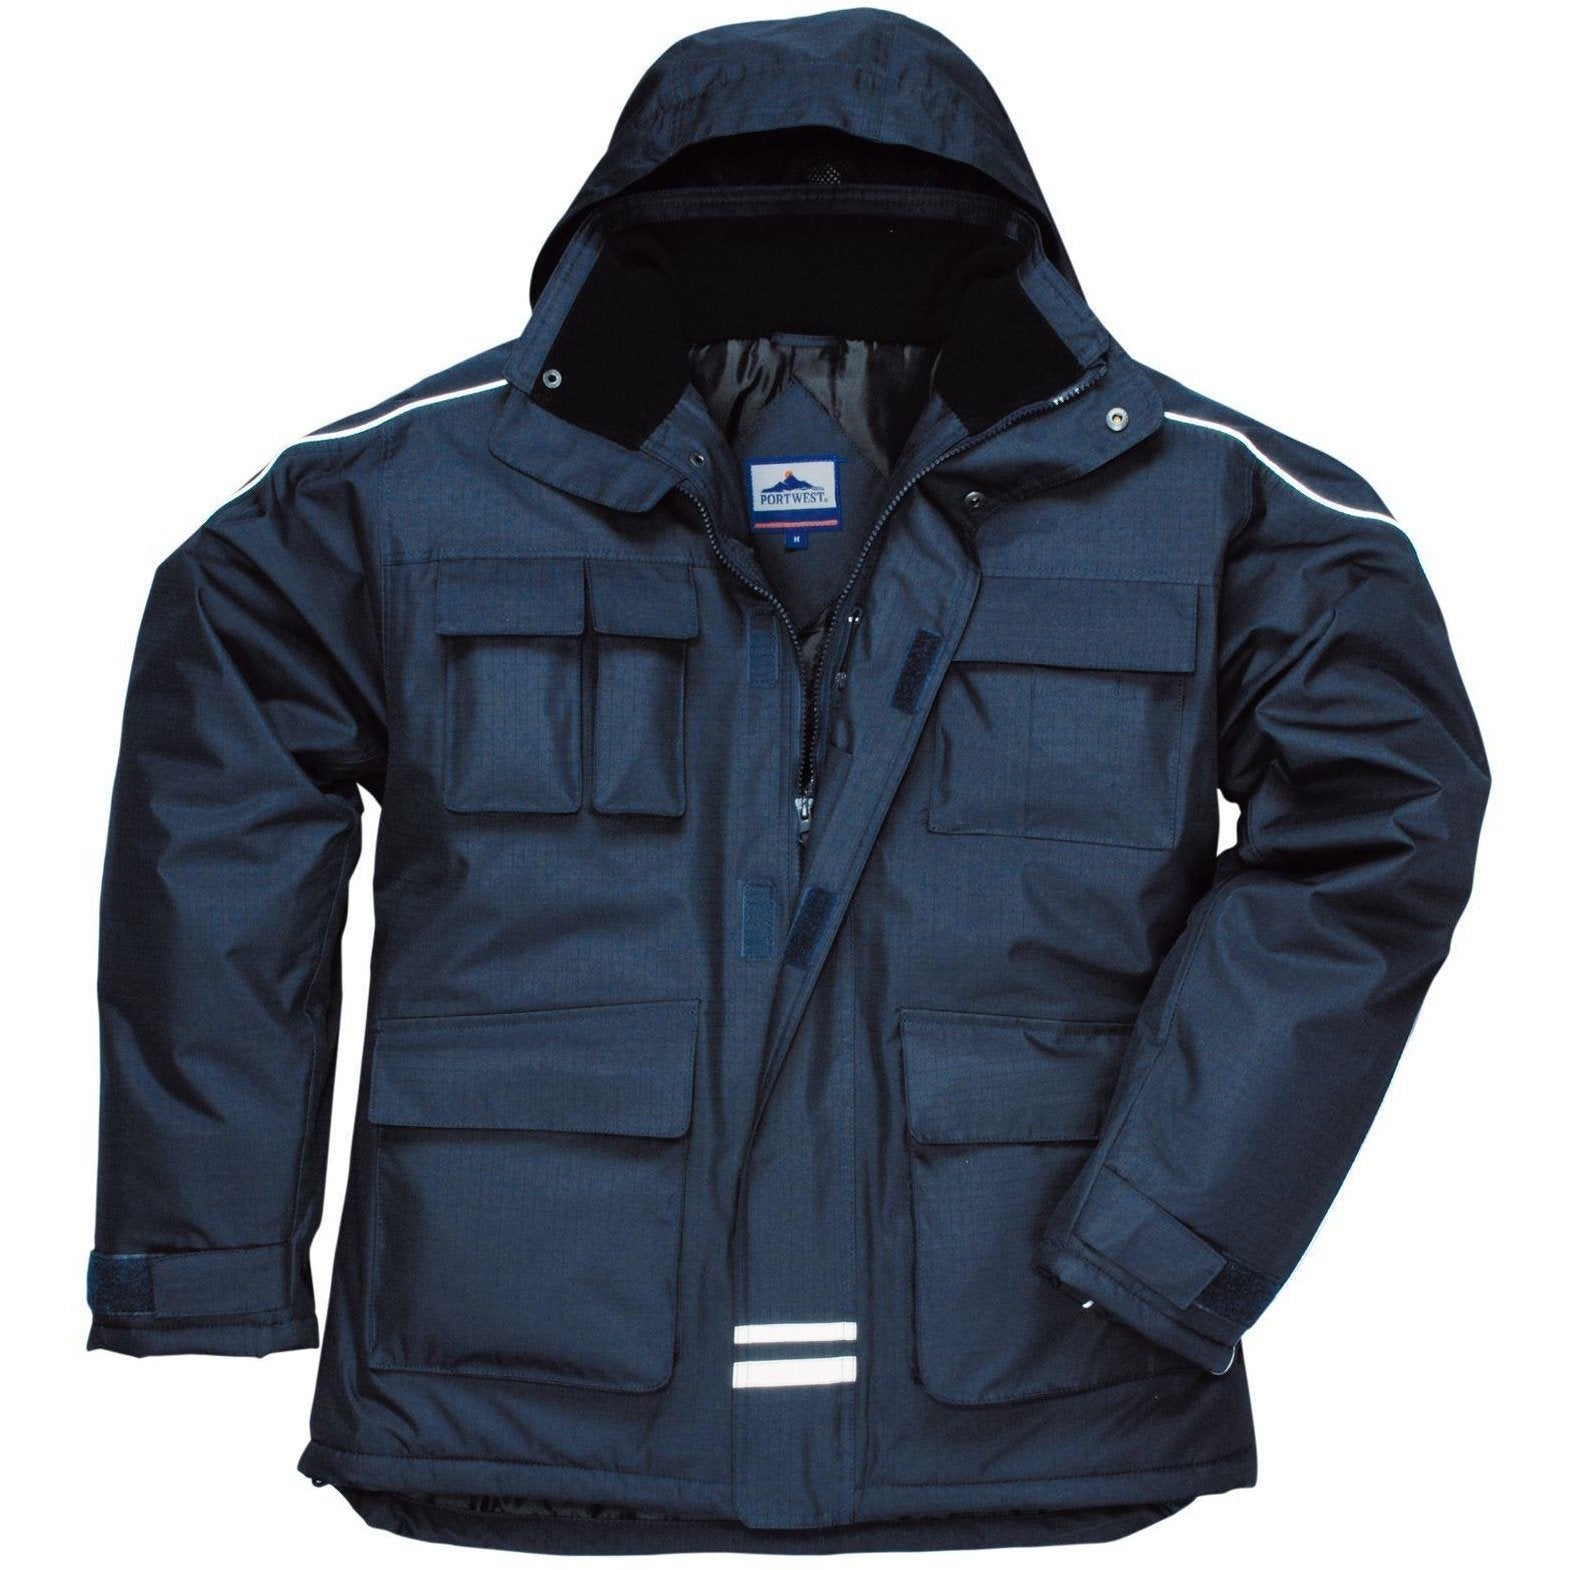 Portwest RS Multi-Pocket Parka S563 - reid outdoors